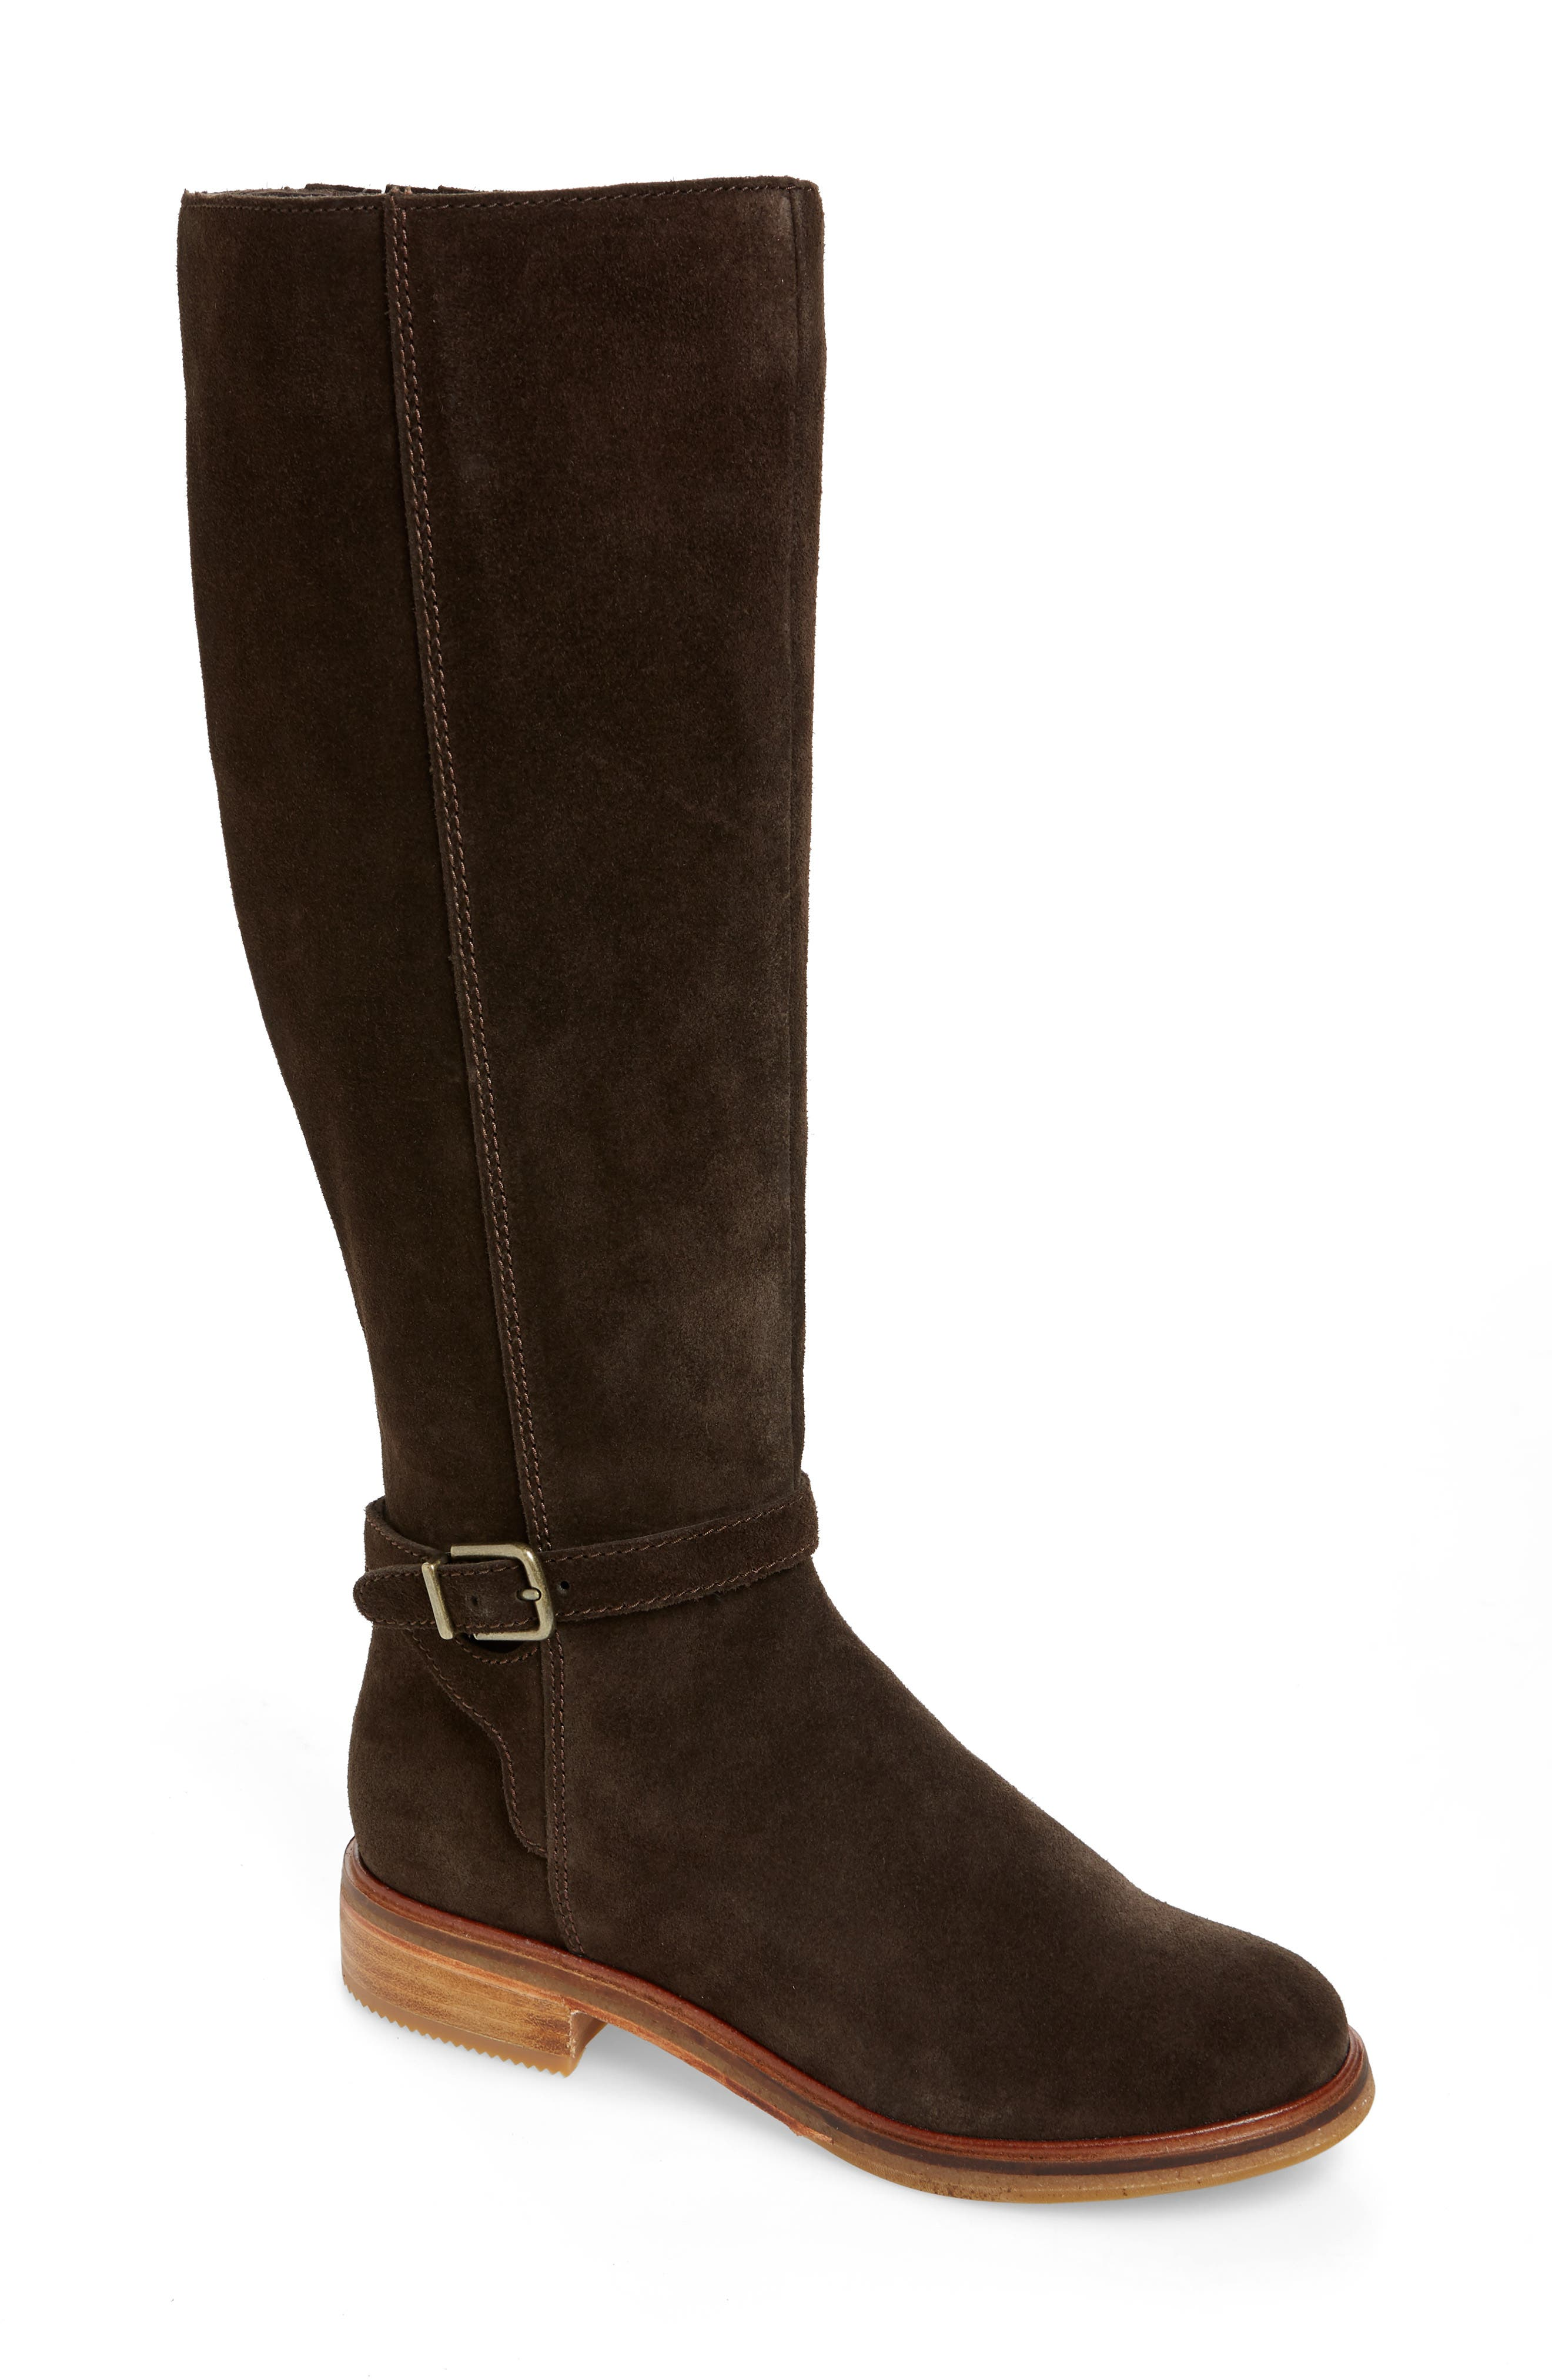 Clarkdale Clad Boot,                         Main,                         color, BROWN SUEDE